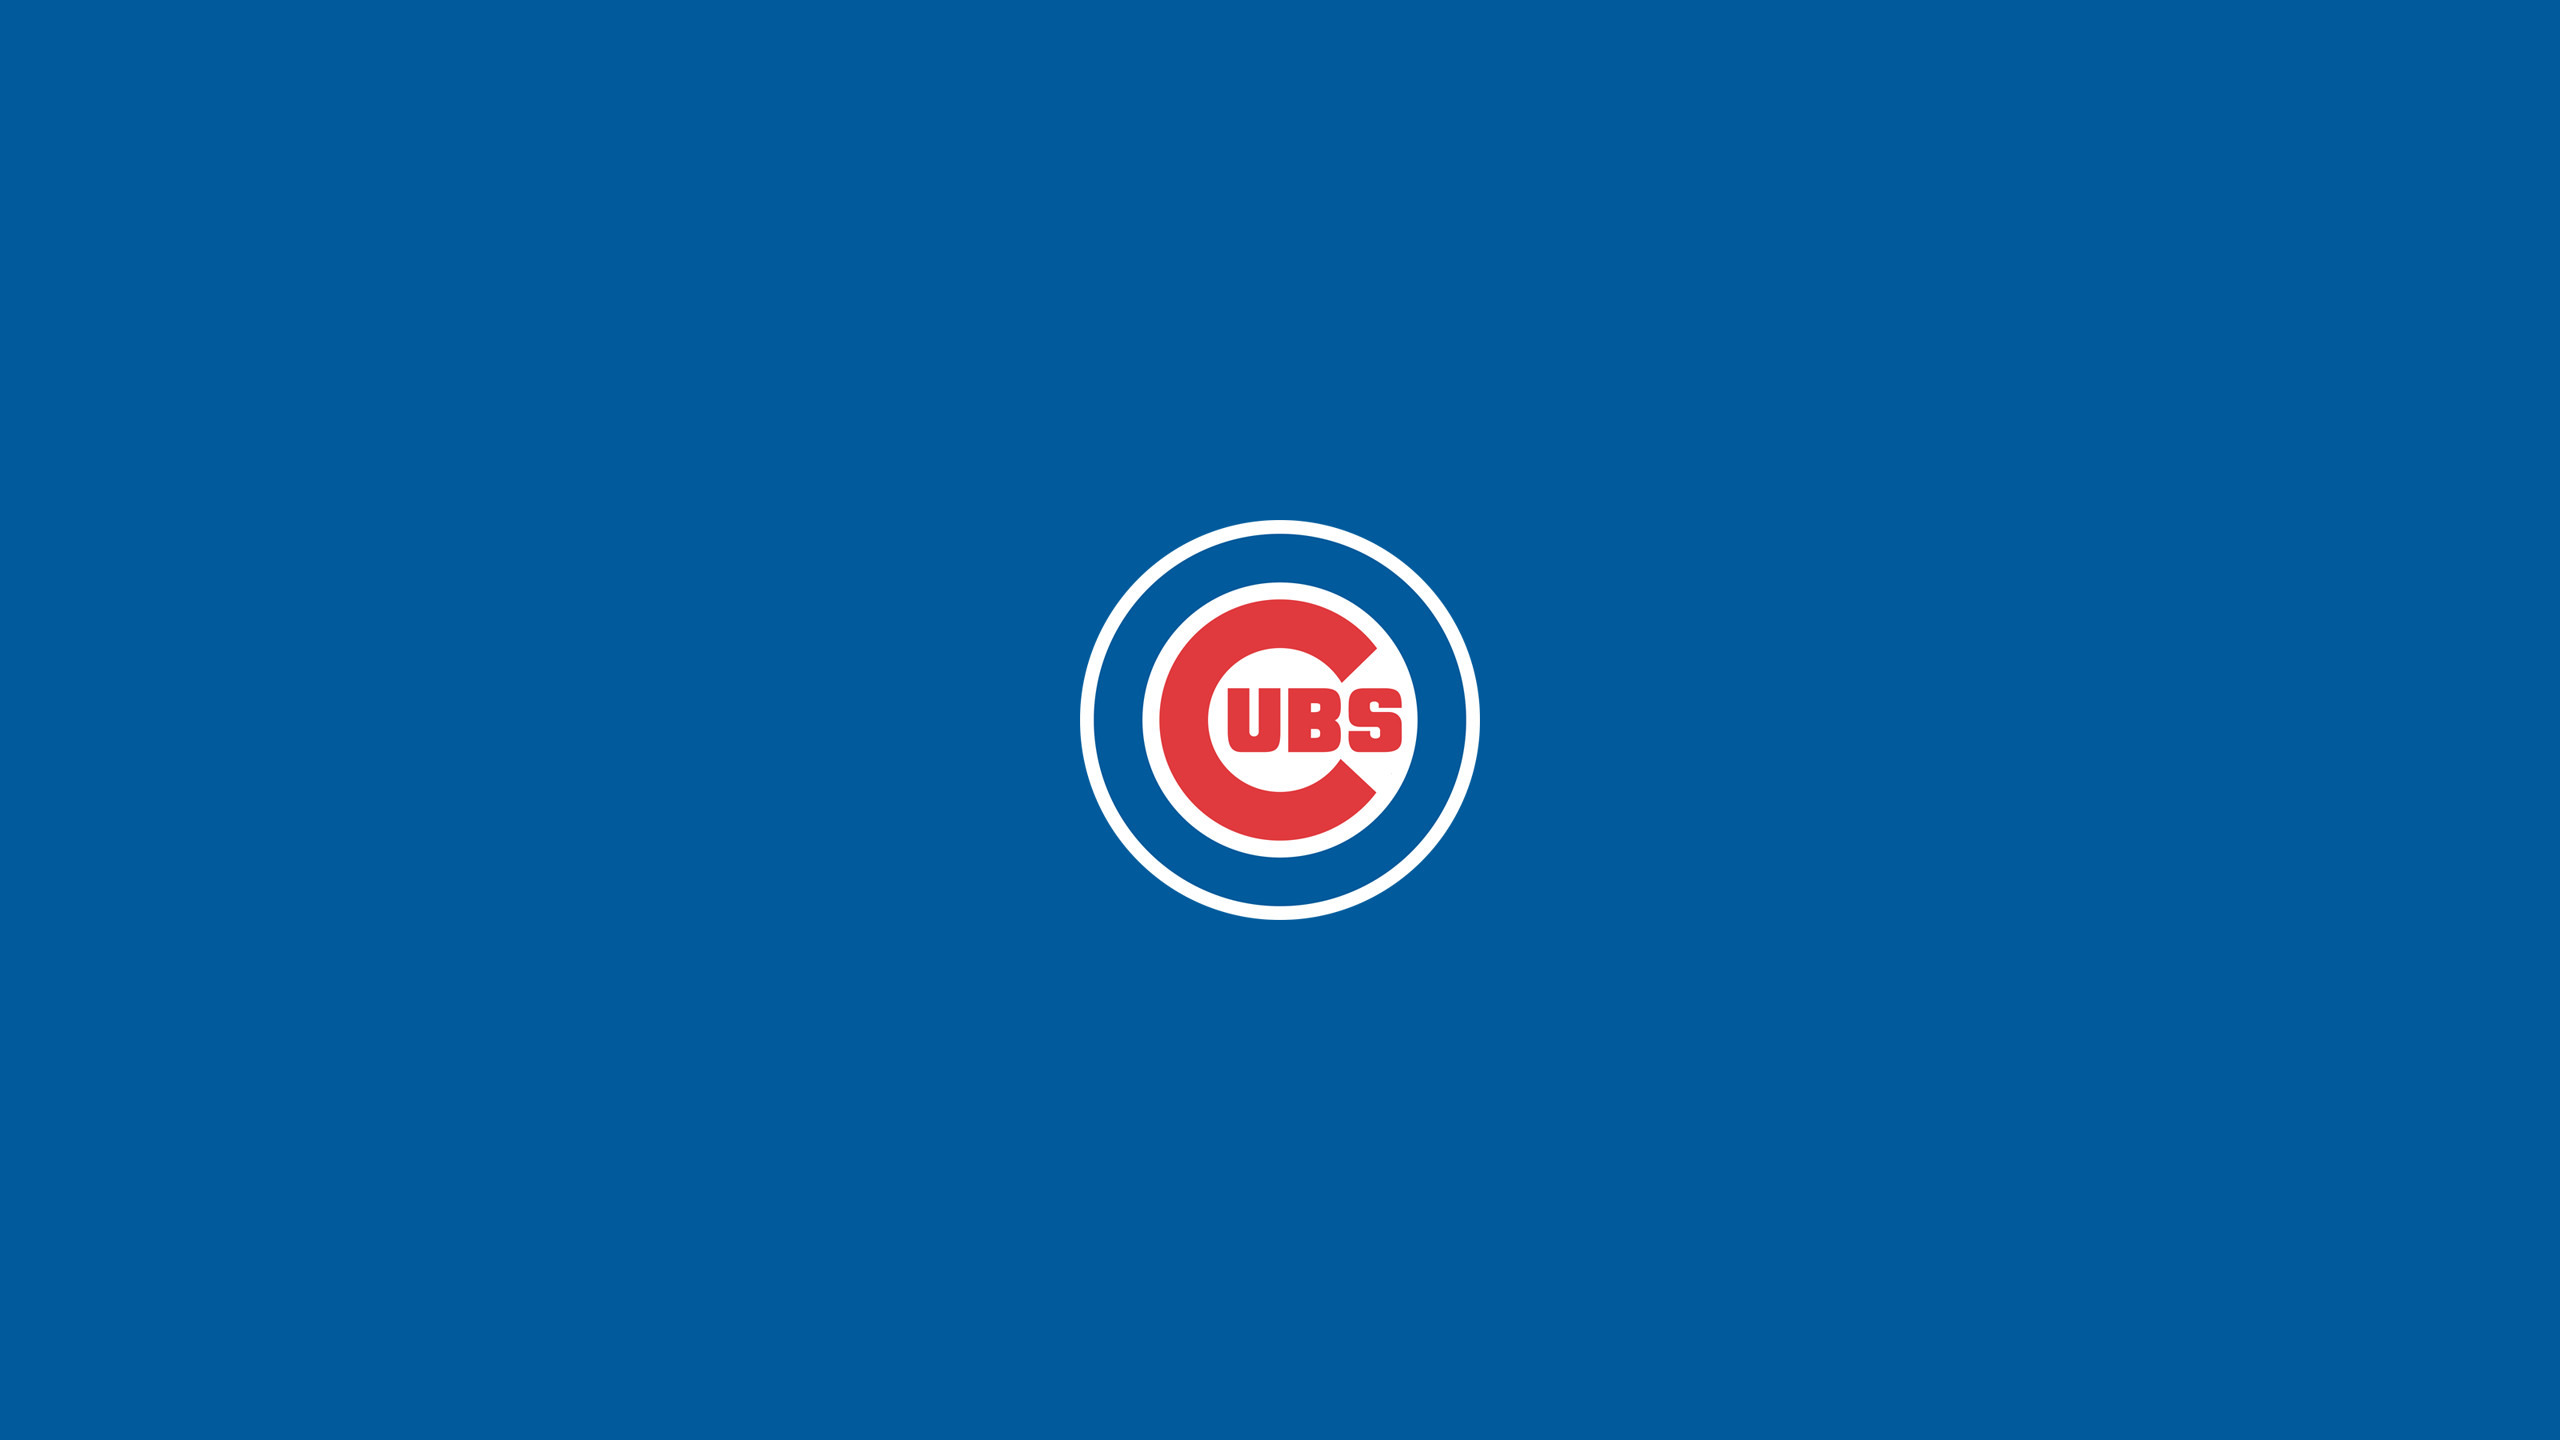 Chicago Cubs Wallpaper Iphone 6 Dachshund Wallpaper For Computer 52 Images